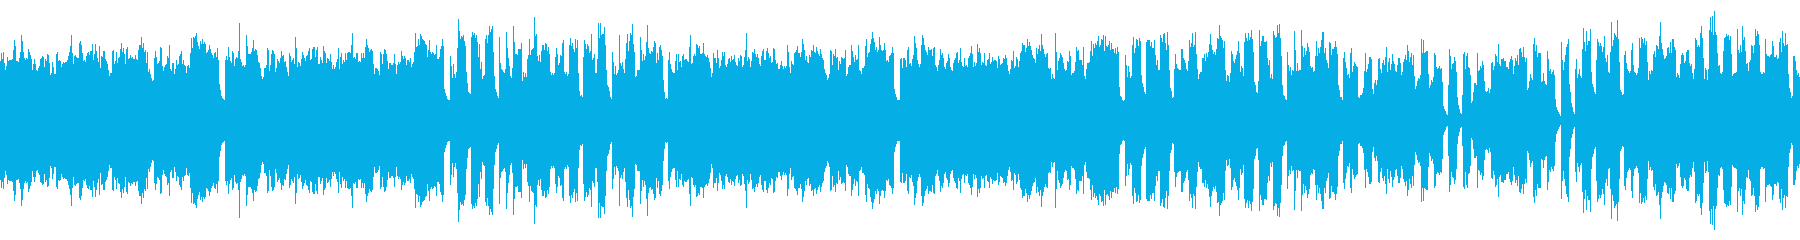 Loop material honky game music's reproduced waveform